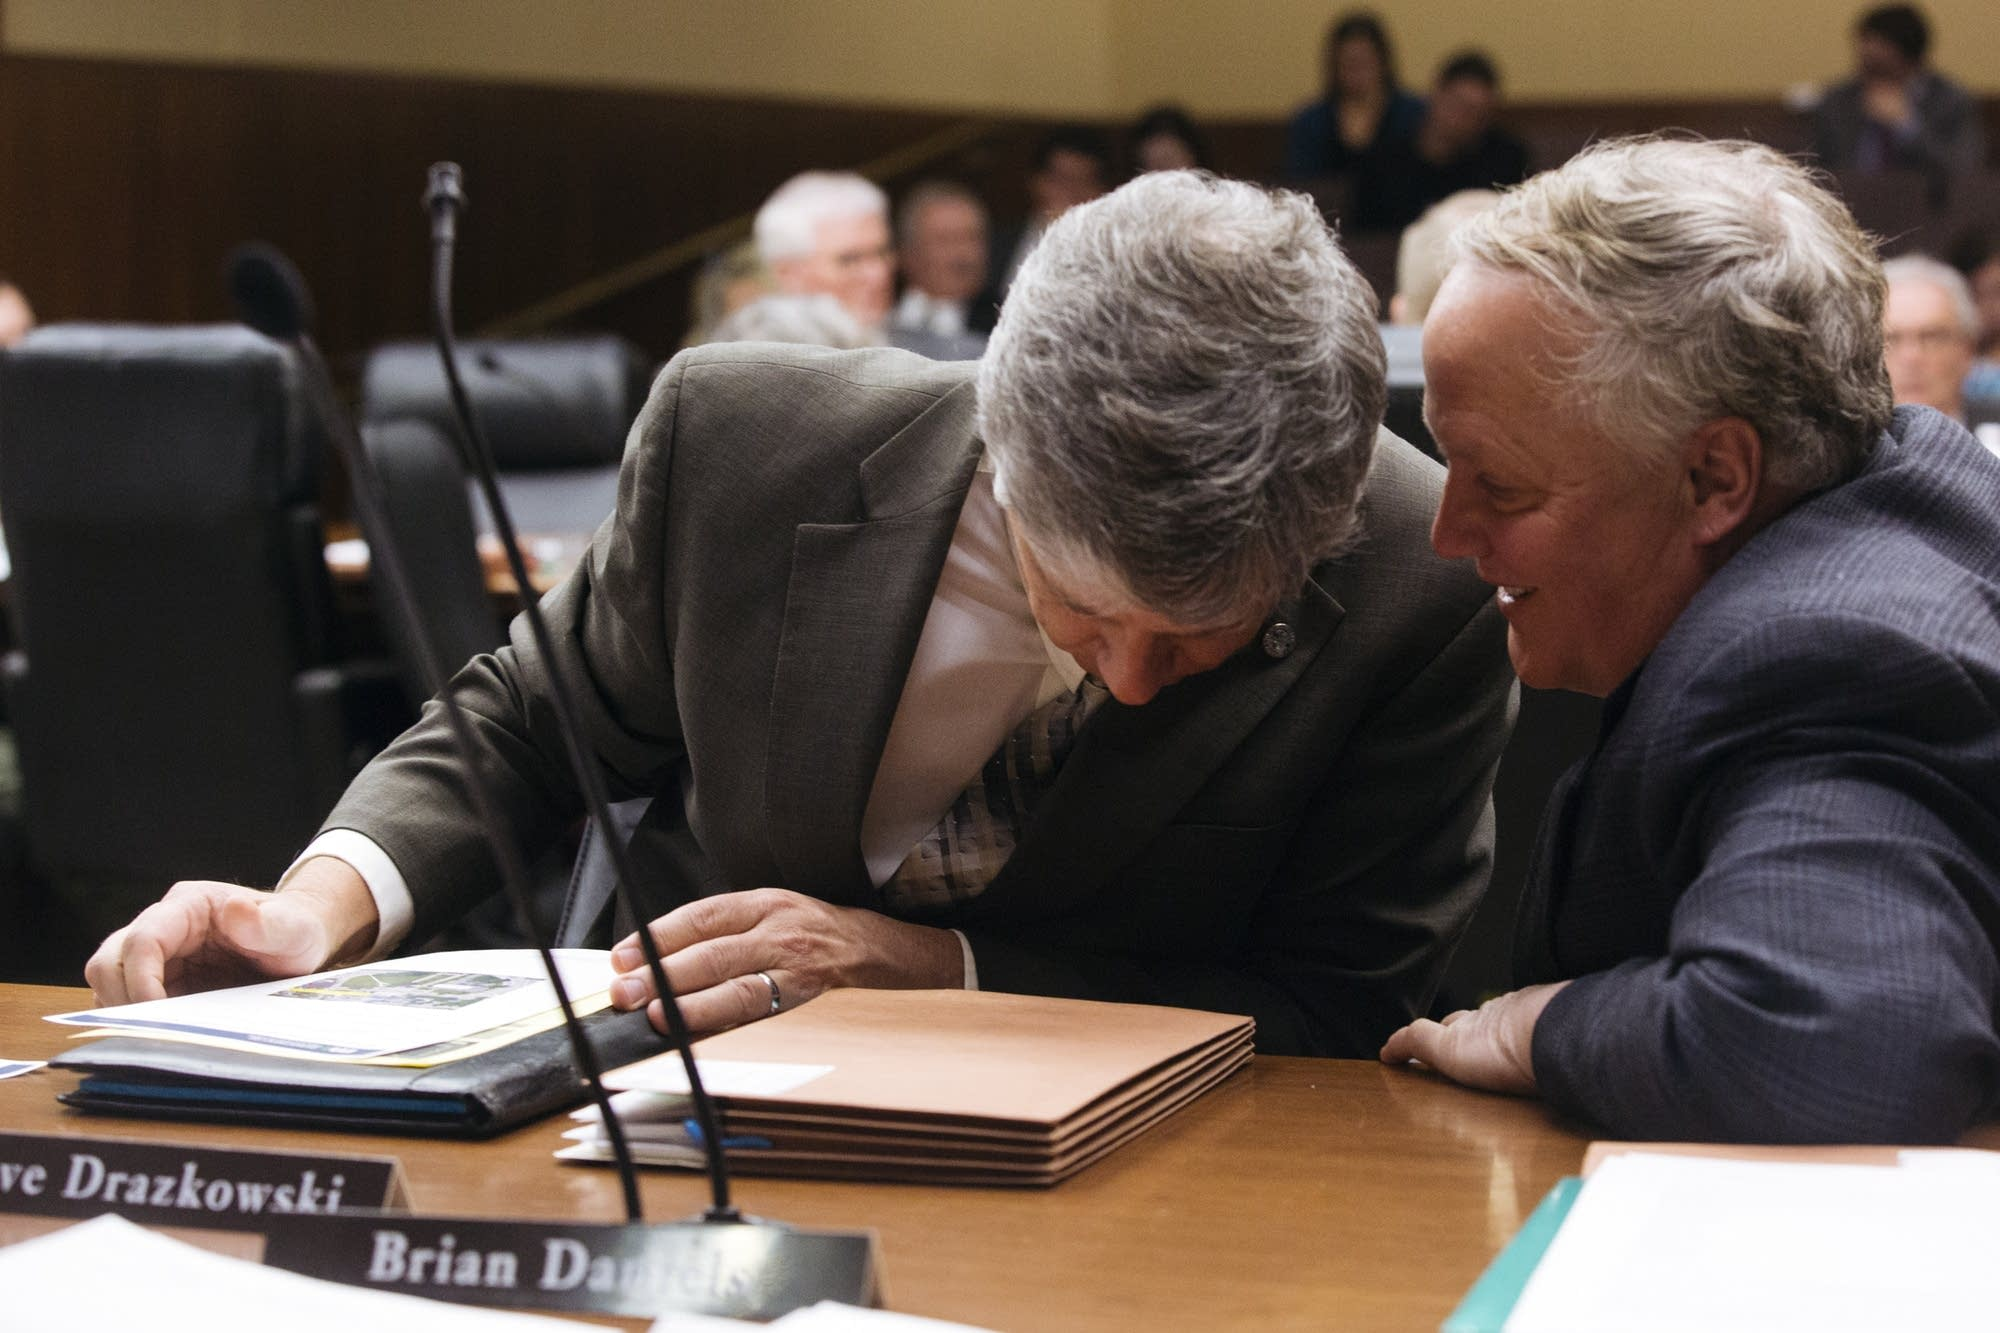 Rep. Steve Drazkowski (R), left, consults with Joe Marble